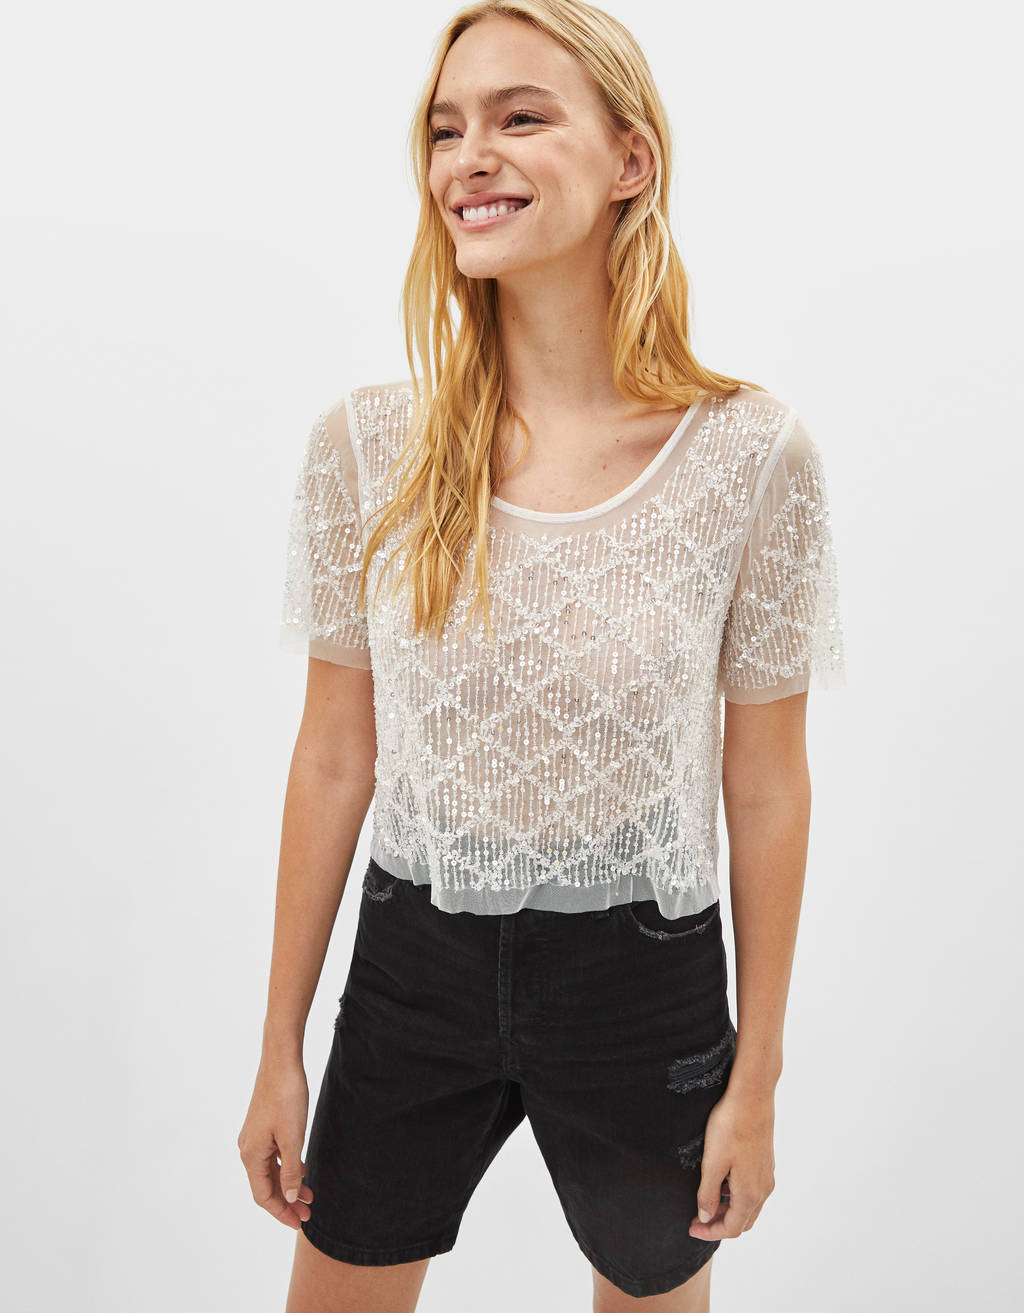 Cropped-Shirt mit Strass